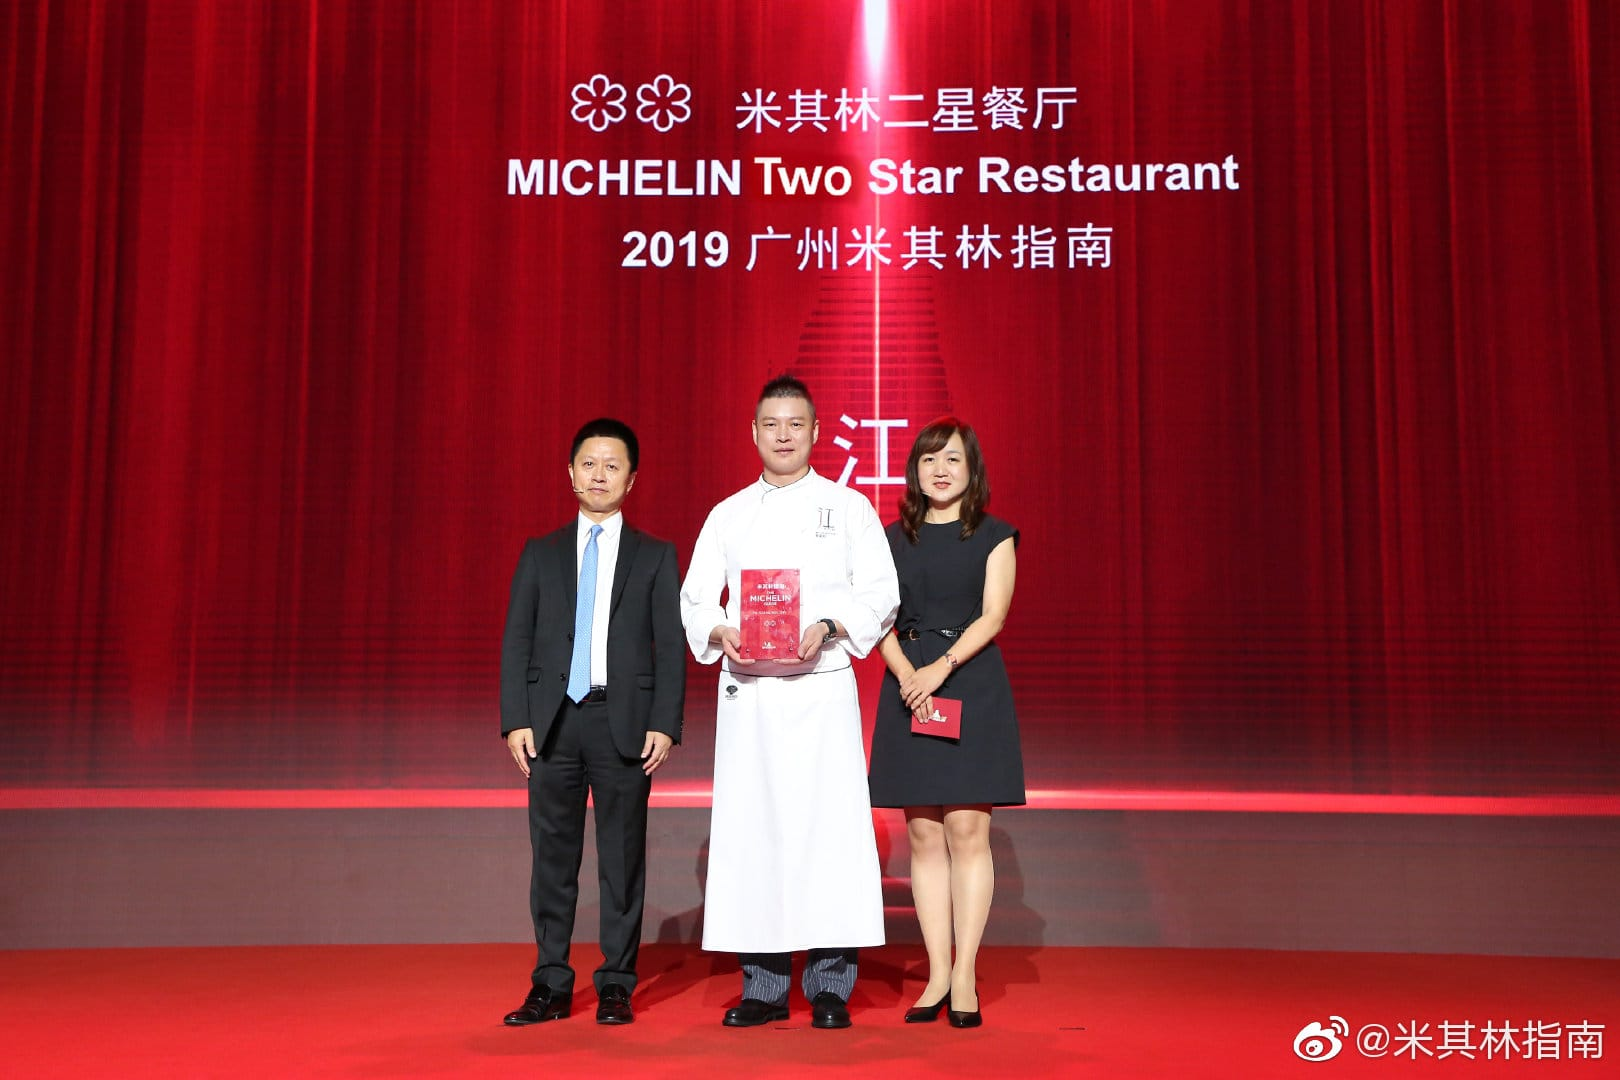 Jiang By Chef Fei at the Mandarin Oriental Hotel in Guangzhou. (Photo courtesy of MICHELIN Guide China.)